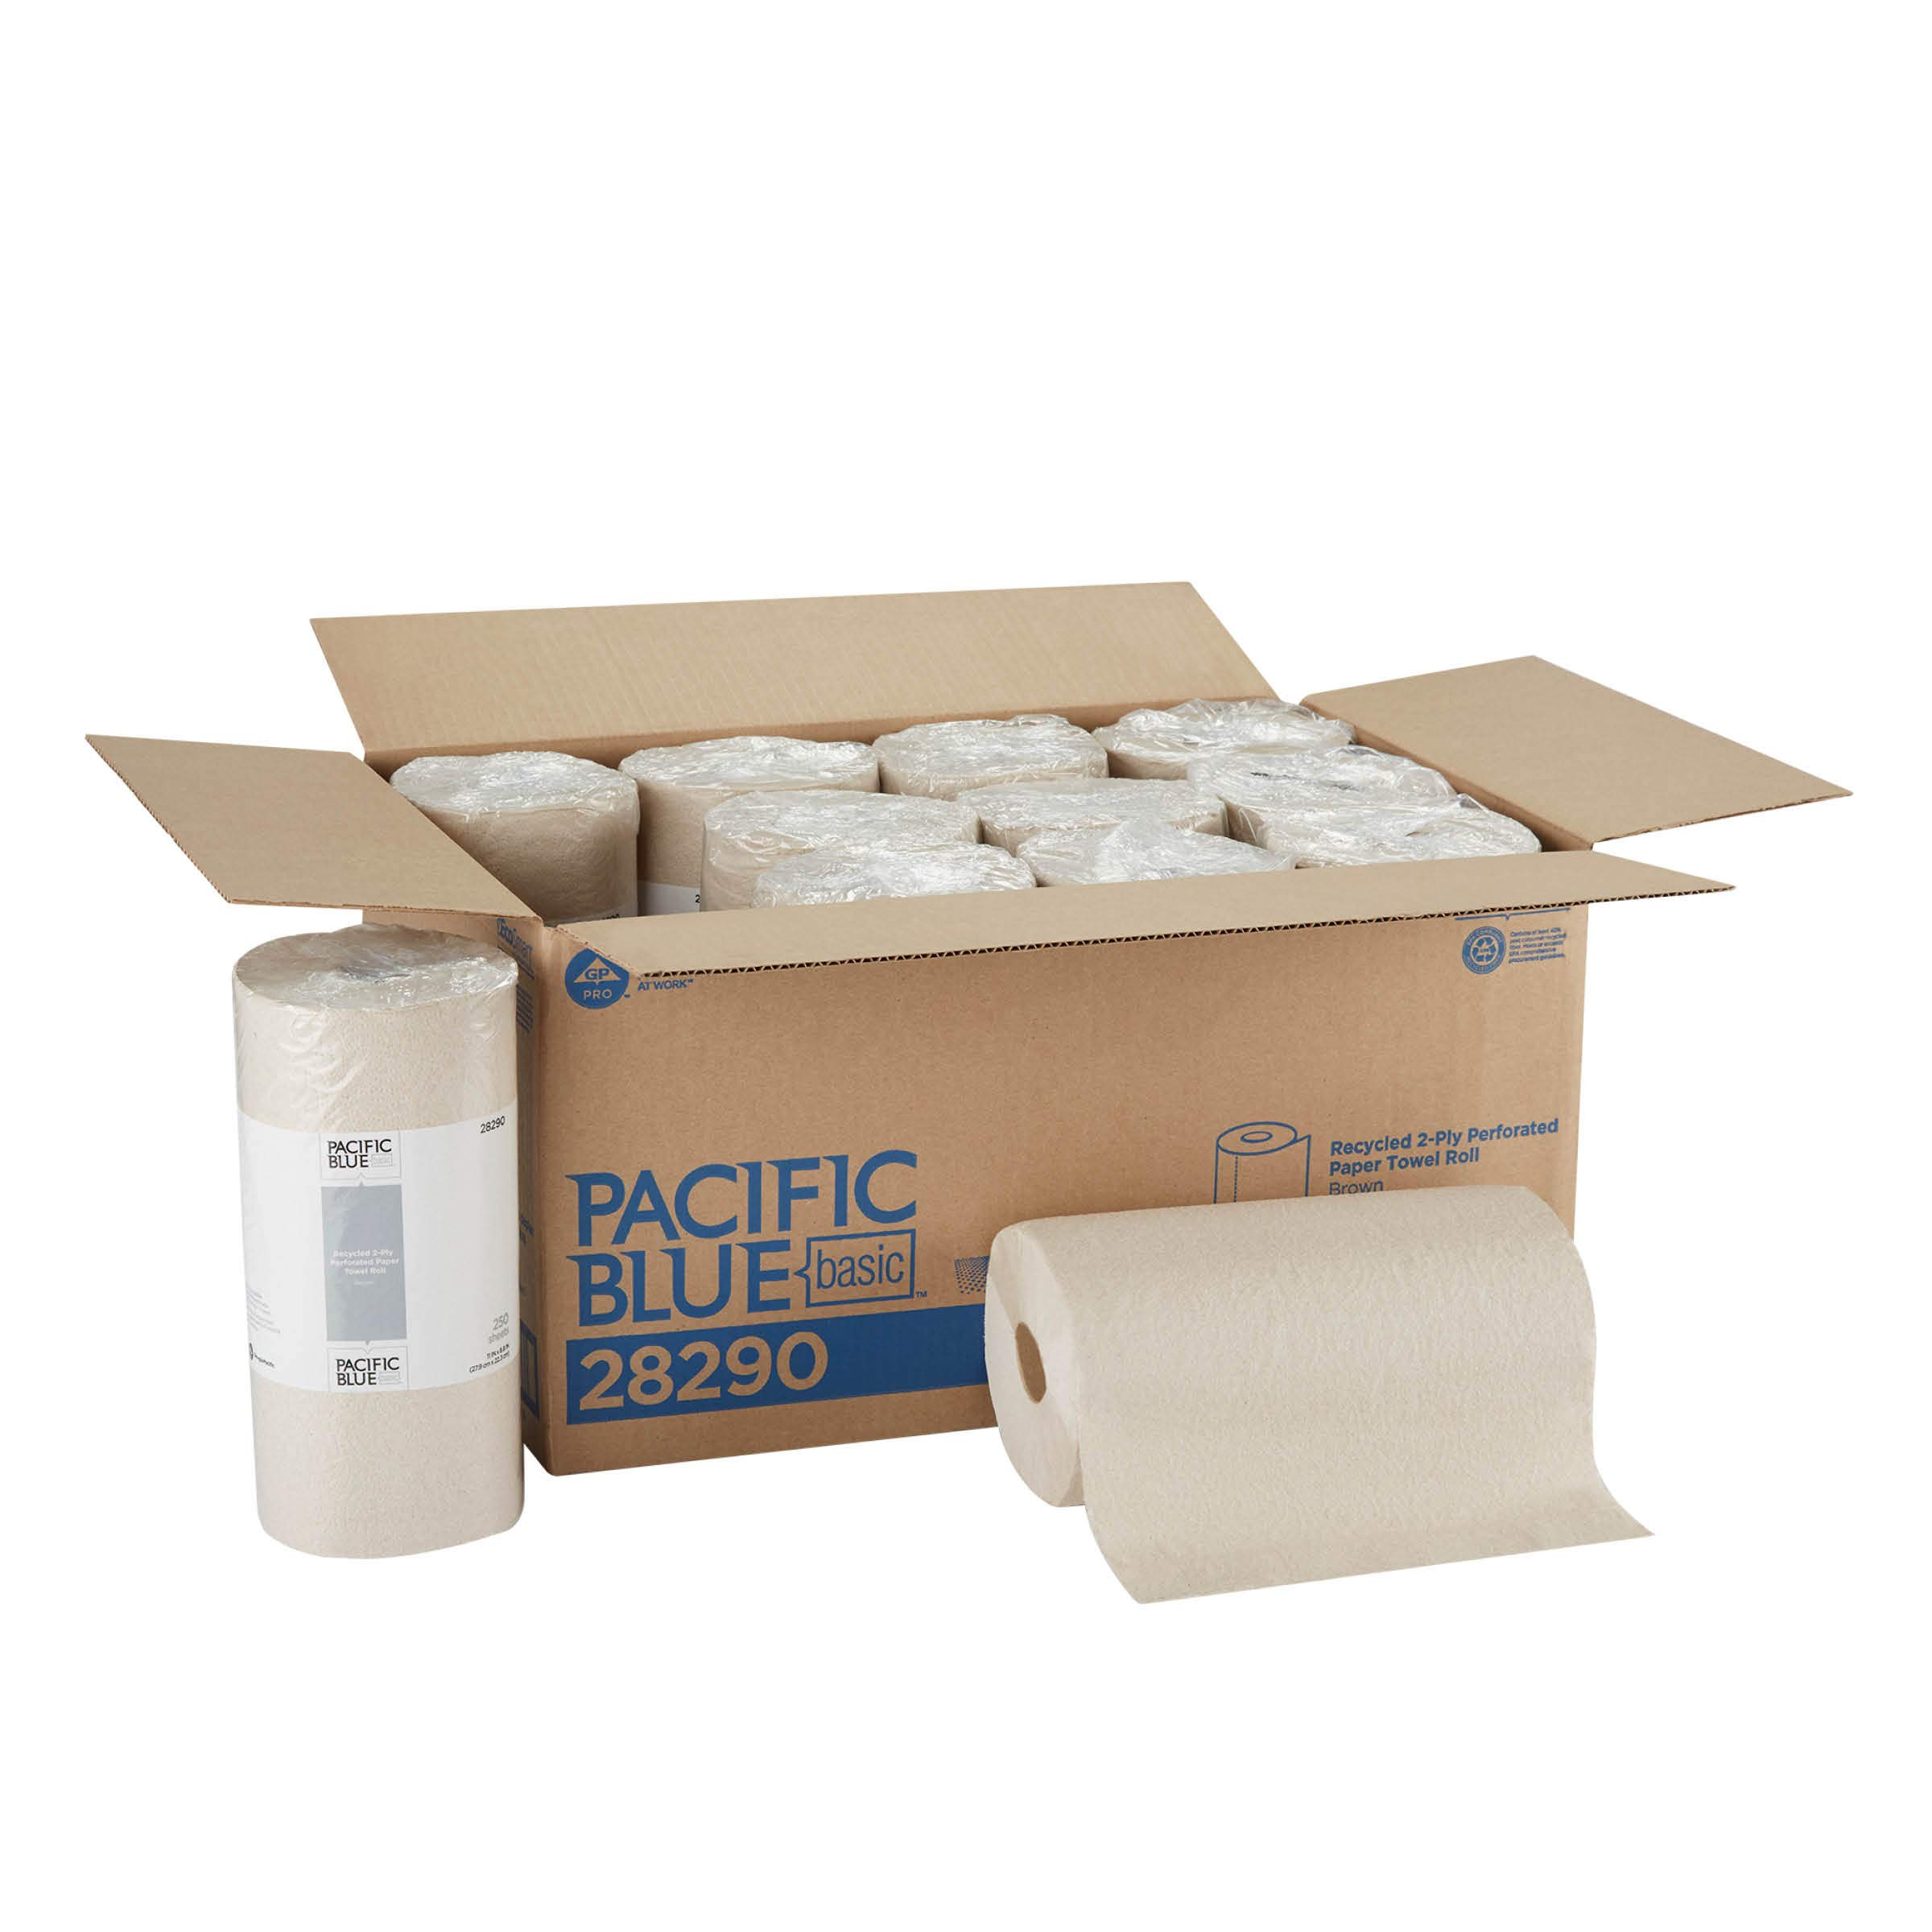 Pacific Blue Basic 2 Ply Recycled Perforated Paper Towel Roll Previously Branded Envision by GP PRO Georgia-Pacific Brown 28290 250 Sheets Per Roll 12 Rolls Per Case